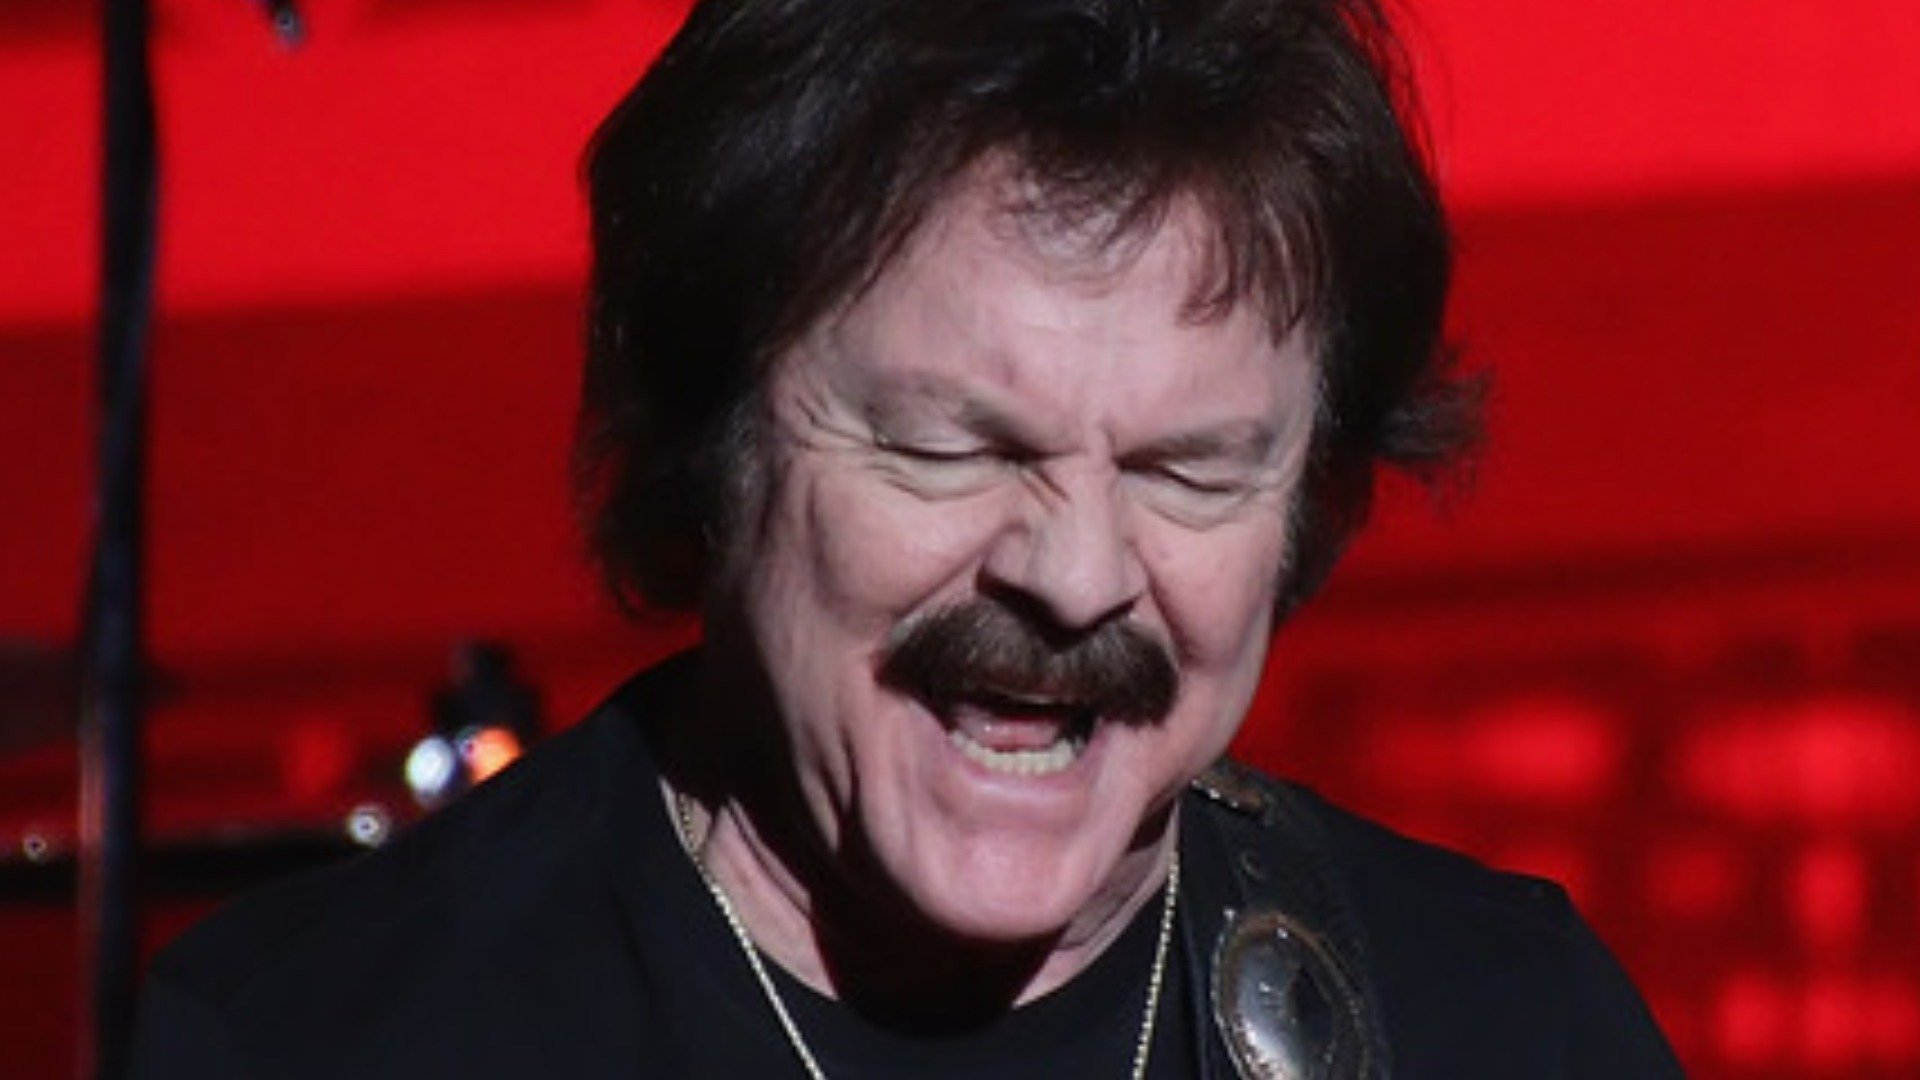 The Tragic Real Life Story Of The Doobie Brothers